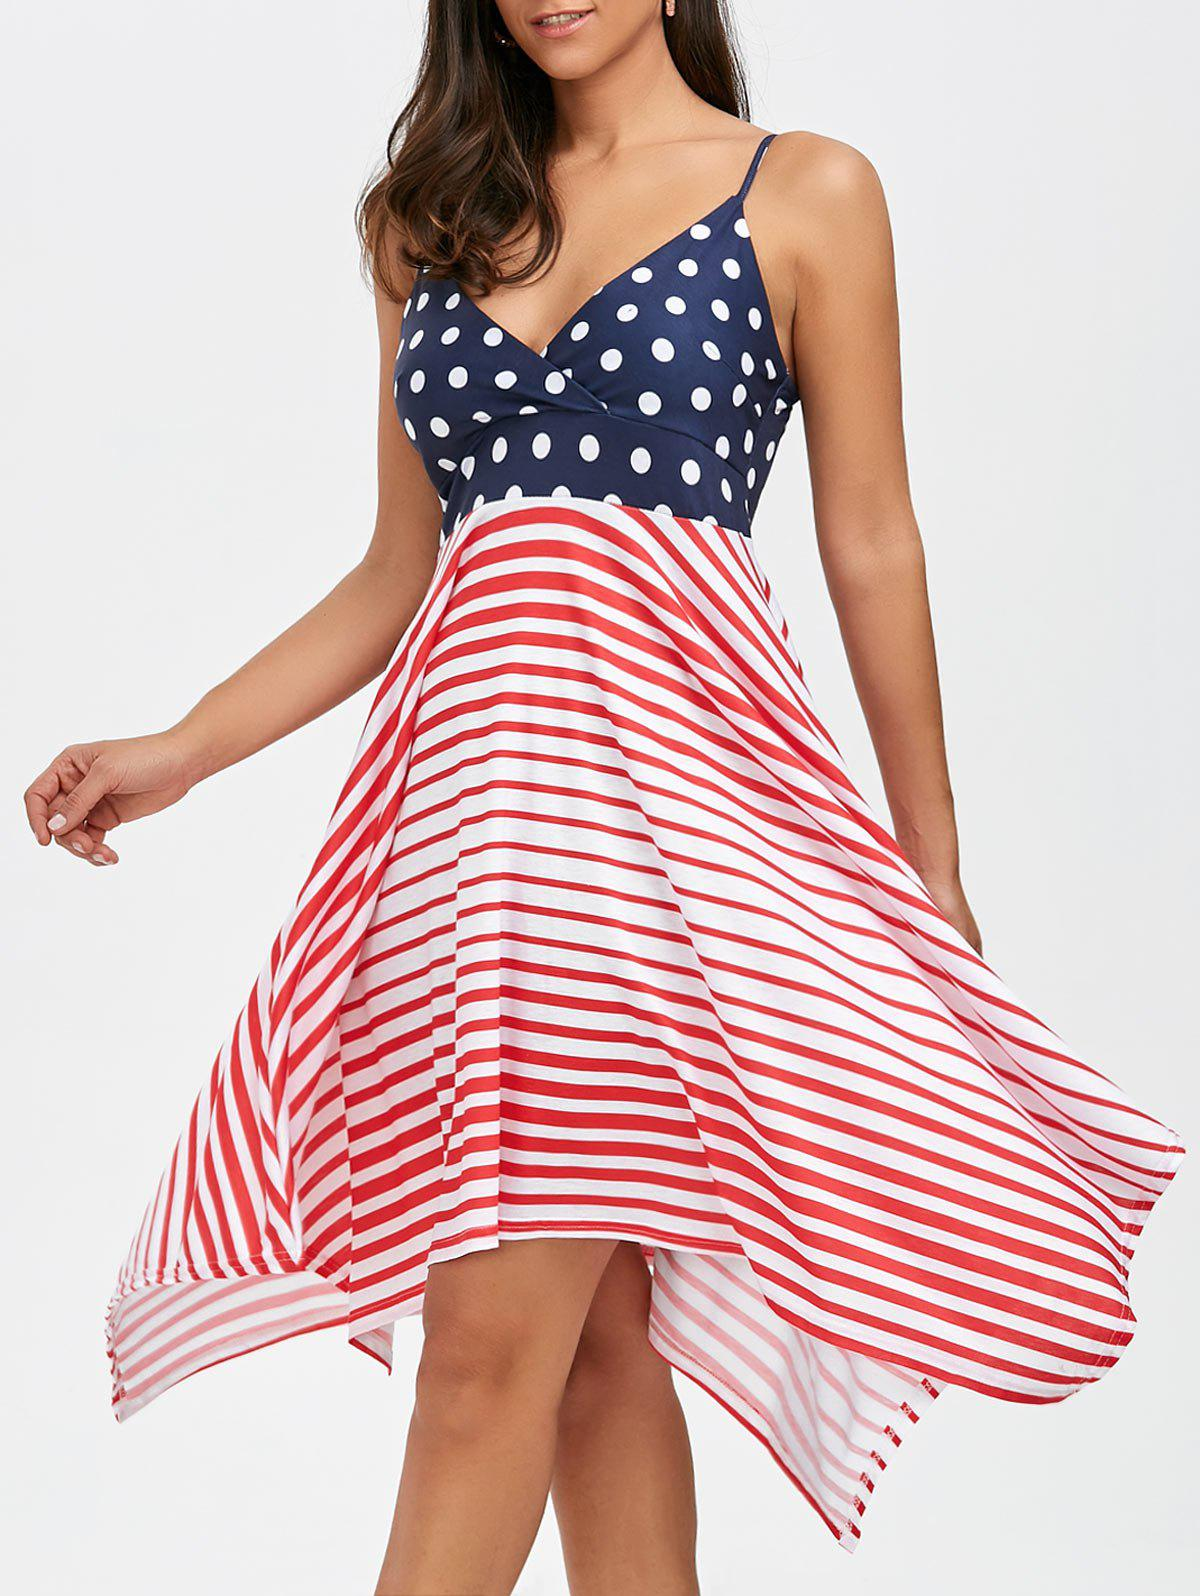 New Bohemian Polka Dot Stripe Asymmetrical Slip Dress